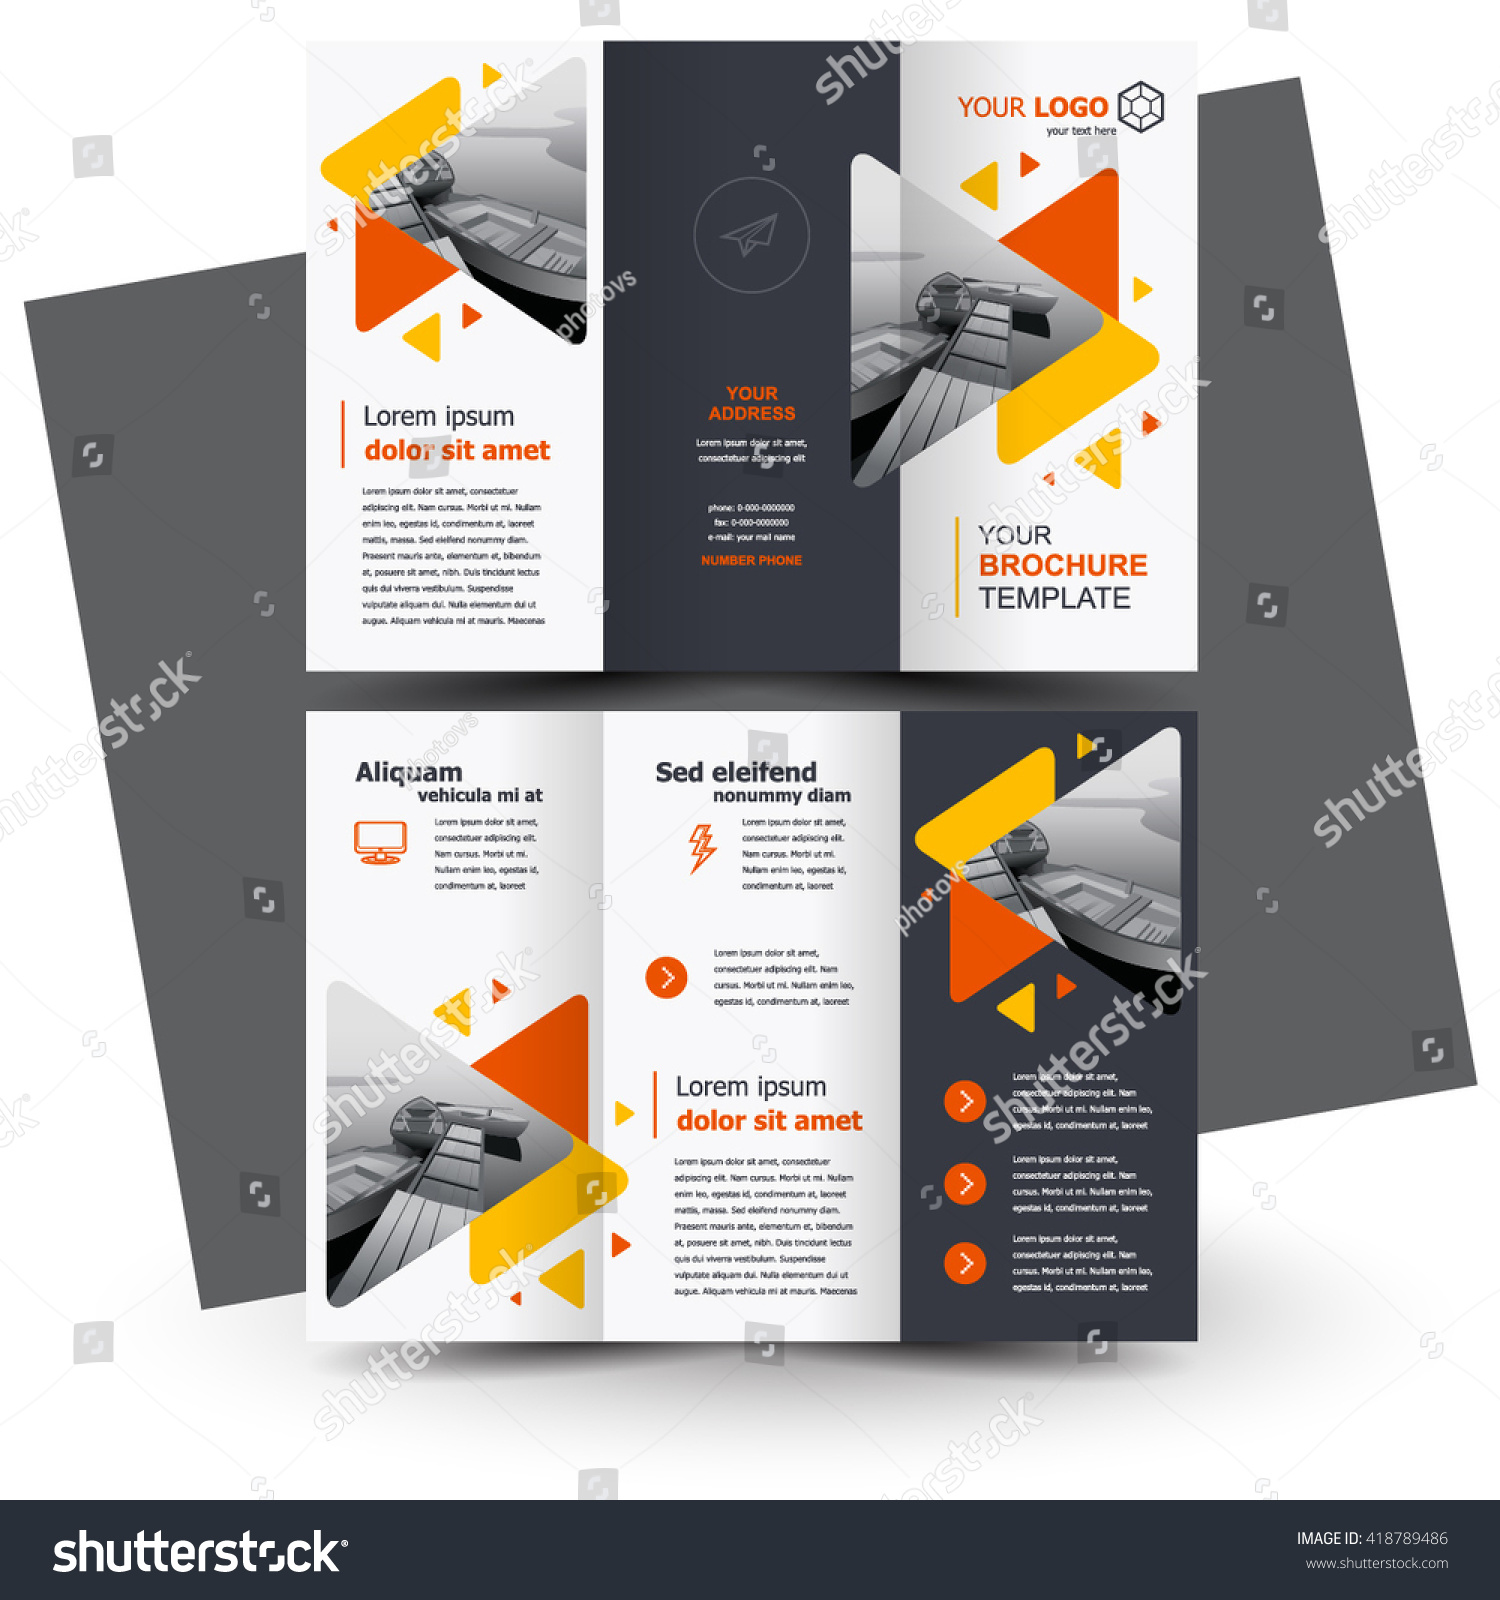 Brochure Design Geometric Abstract Business Brochure Vector – Business Brochure Design